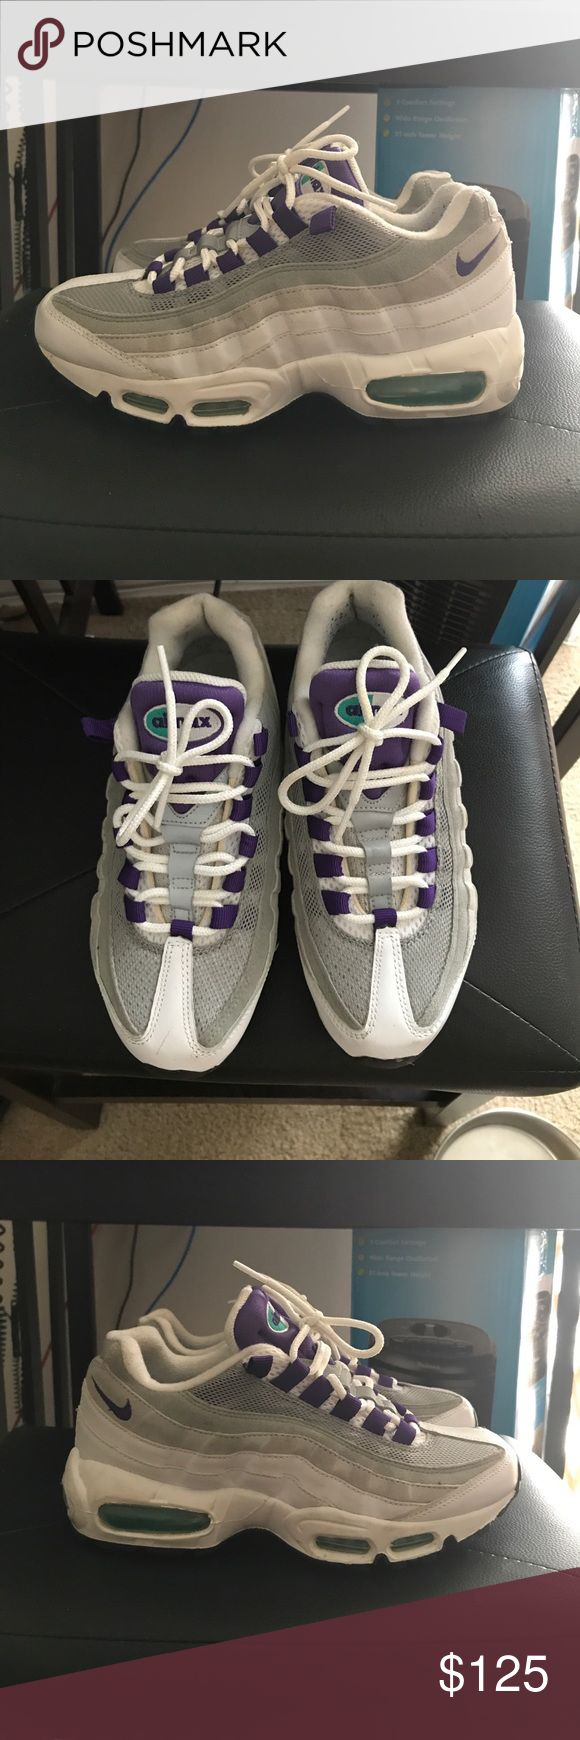 """Nike Air Max 95 """"Grape"""" Only worn 3 times. Size 6.5. White/court purple-emerald Green- Wolf grey. Style #554970-151. Released from the vault in 2015 at $170. Nike Shoes Sneakers"""